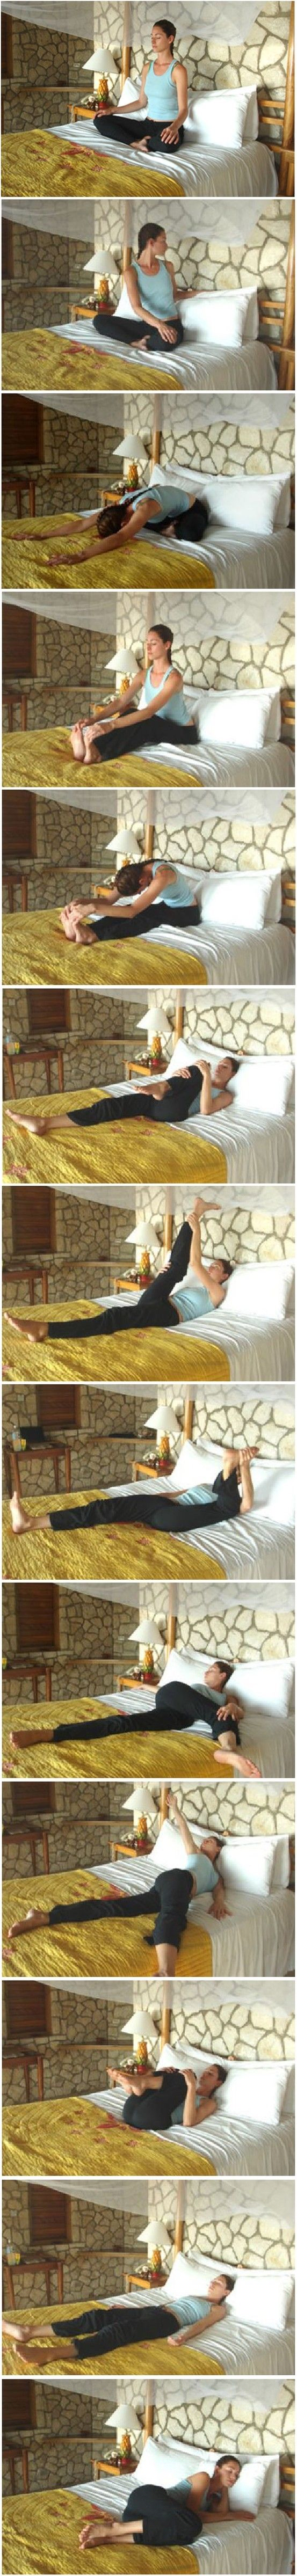 This is really the best pin of this bedtime yoga routine, with all the pictures in a row instead of at different pages! Btw, it totally helps you sleep better! Bedtime Yoga from womenshealthmag.com Love this! Doing it! #totalbodytransformation